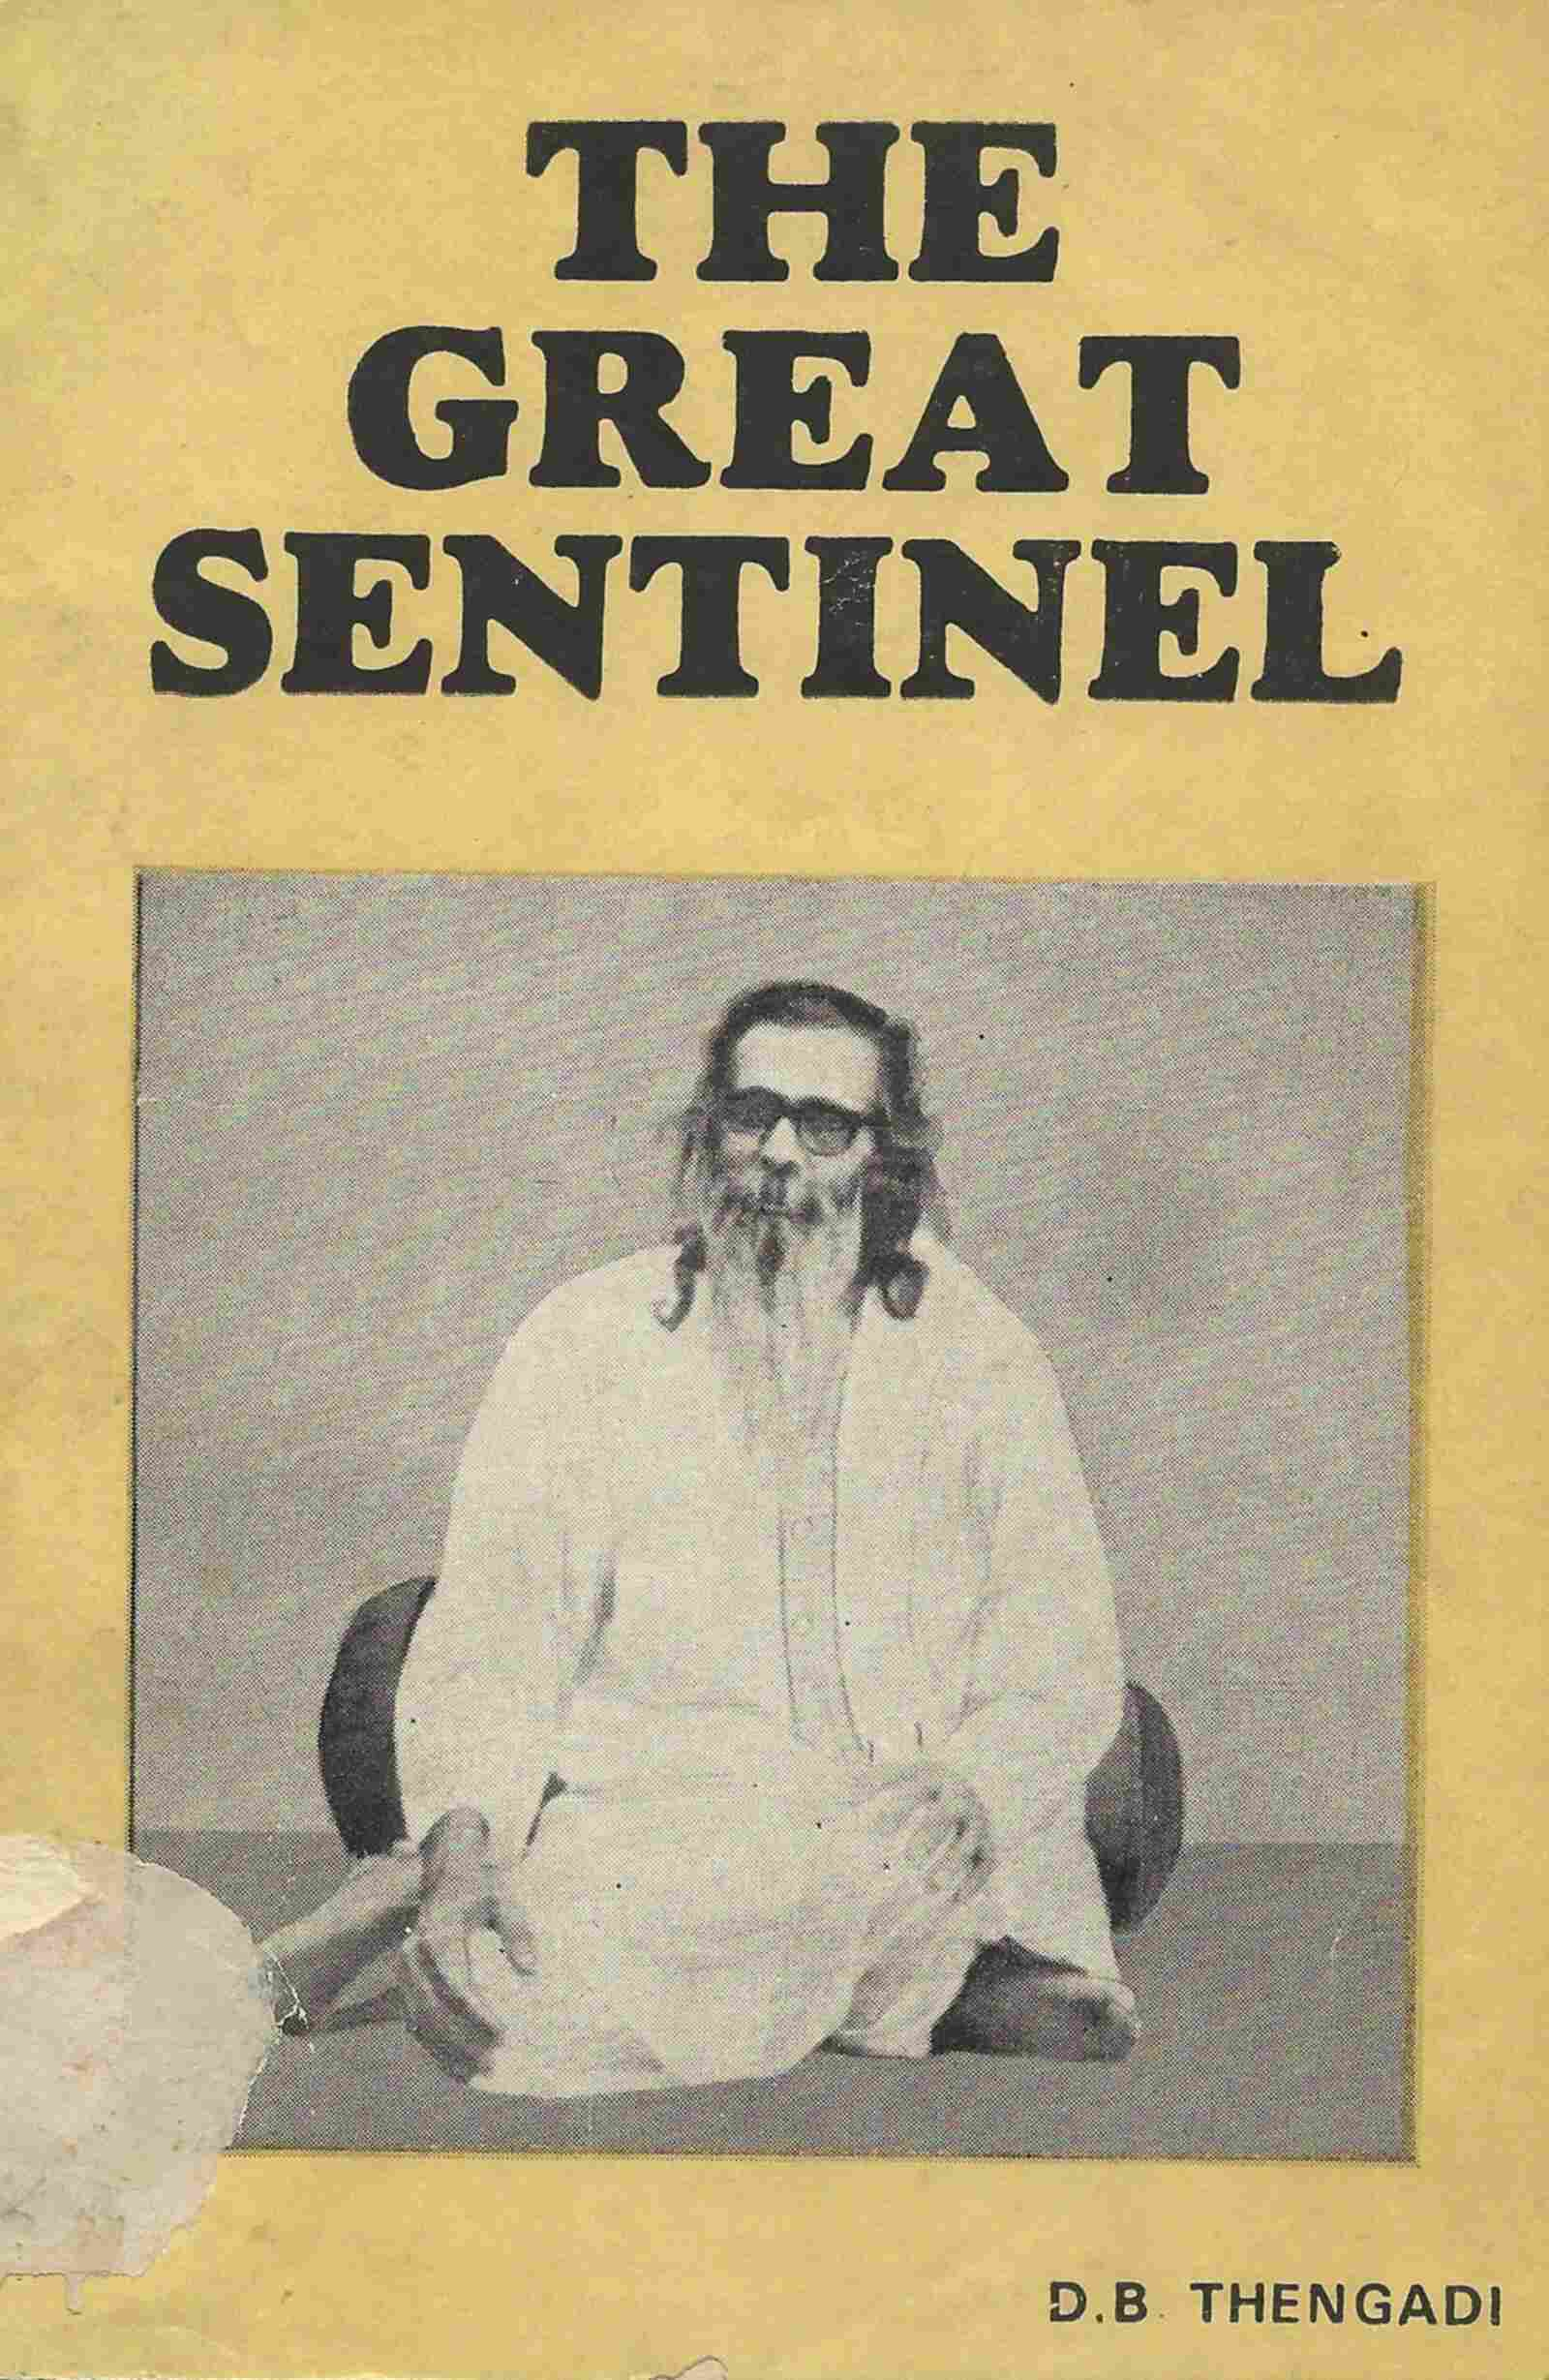 The Great Sentinel